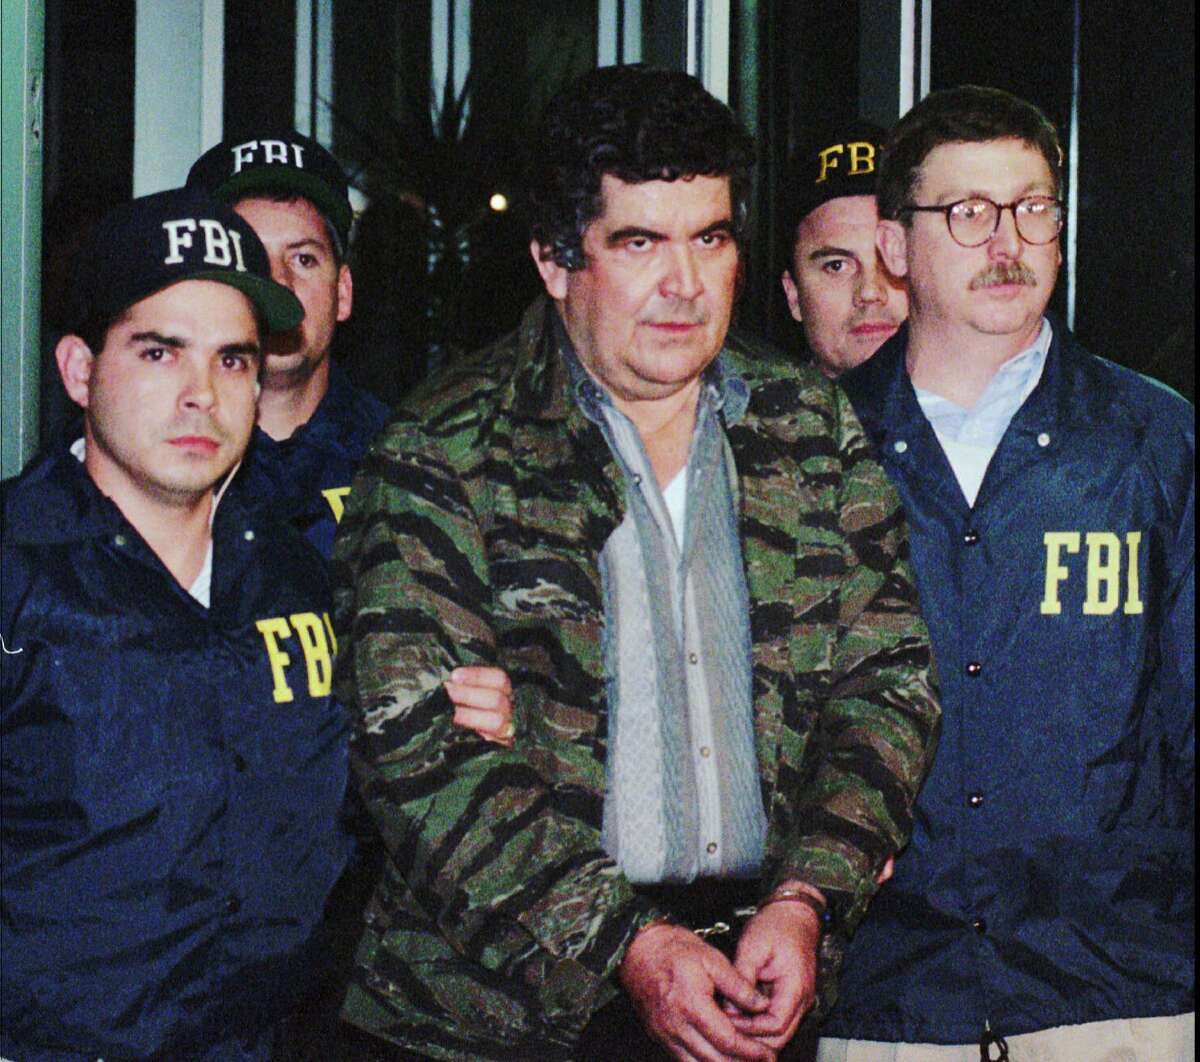 Juan Garcia Abrego is escorted from FBI headquarters in Houston in 1996 after his arrest in Mexico. Garcia Abrego was sentenced to 11 life terms and fined $128 million in 1997.